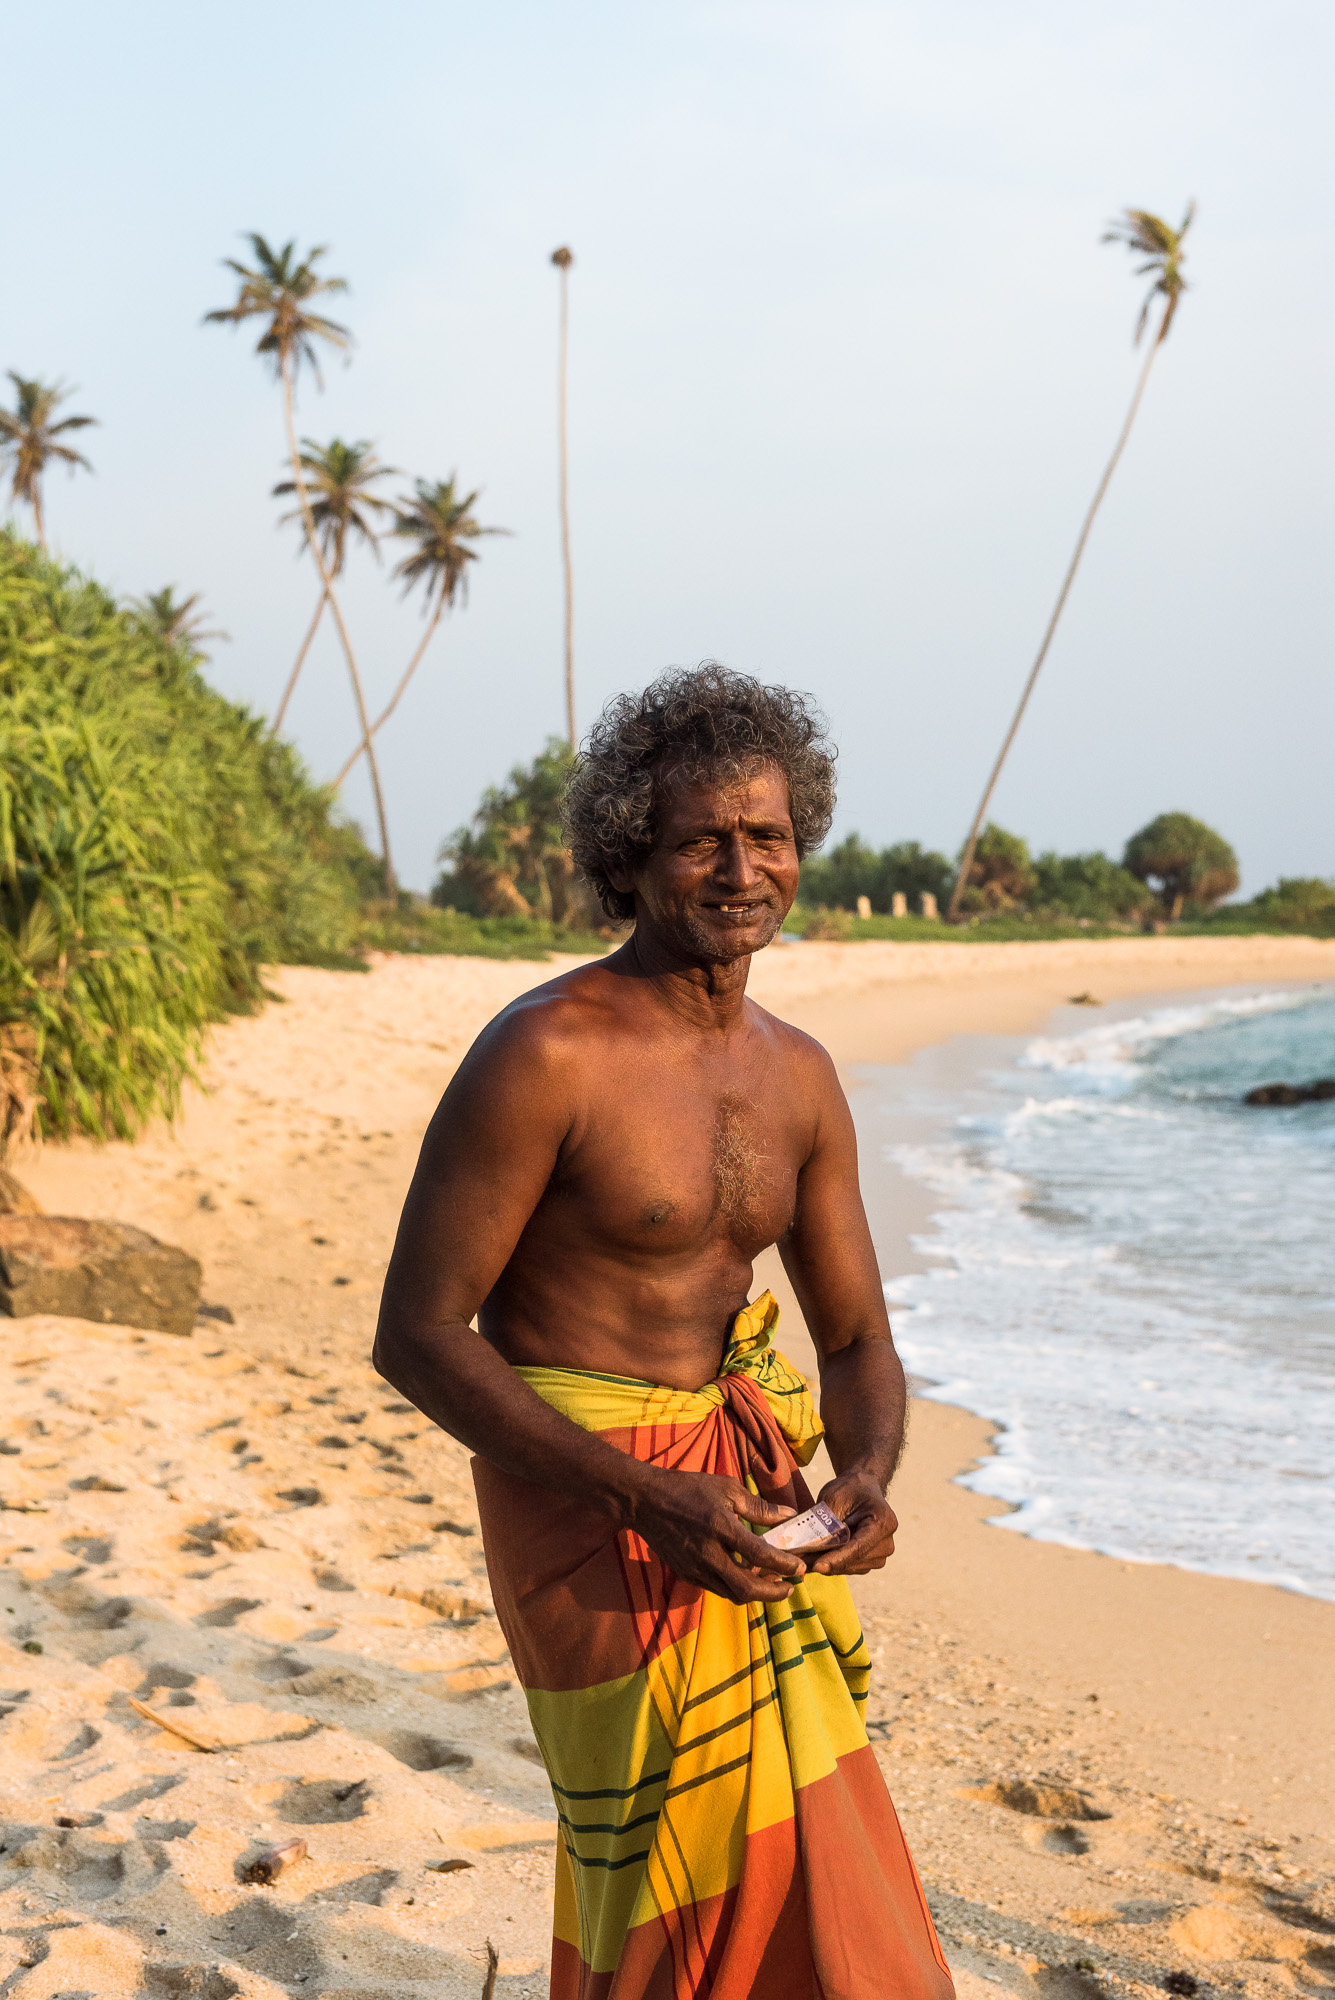 Fisherman, Koggala beach